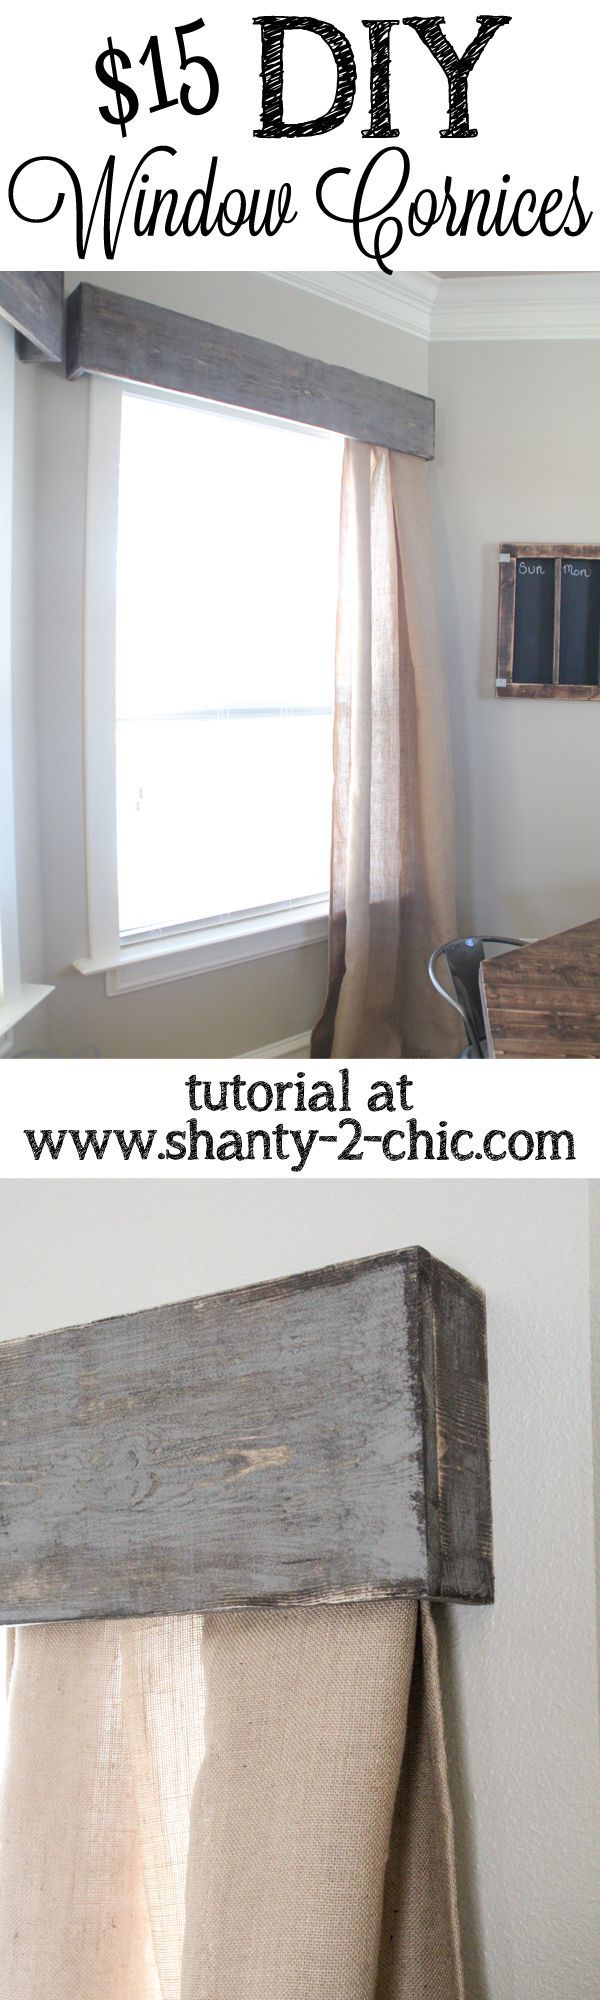 Country curtains logo - Diy Wooden Window Cornice